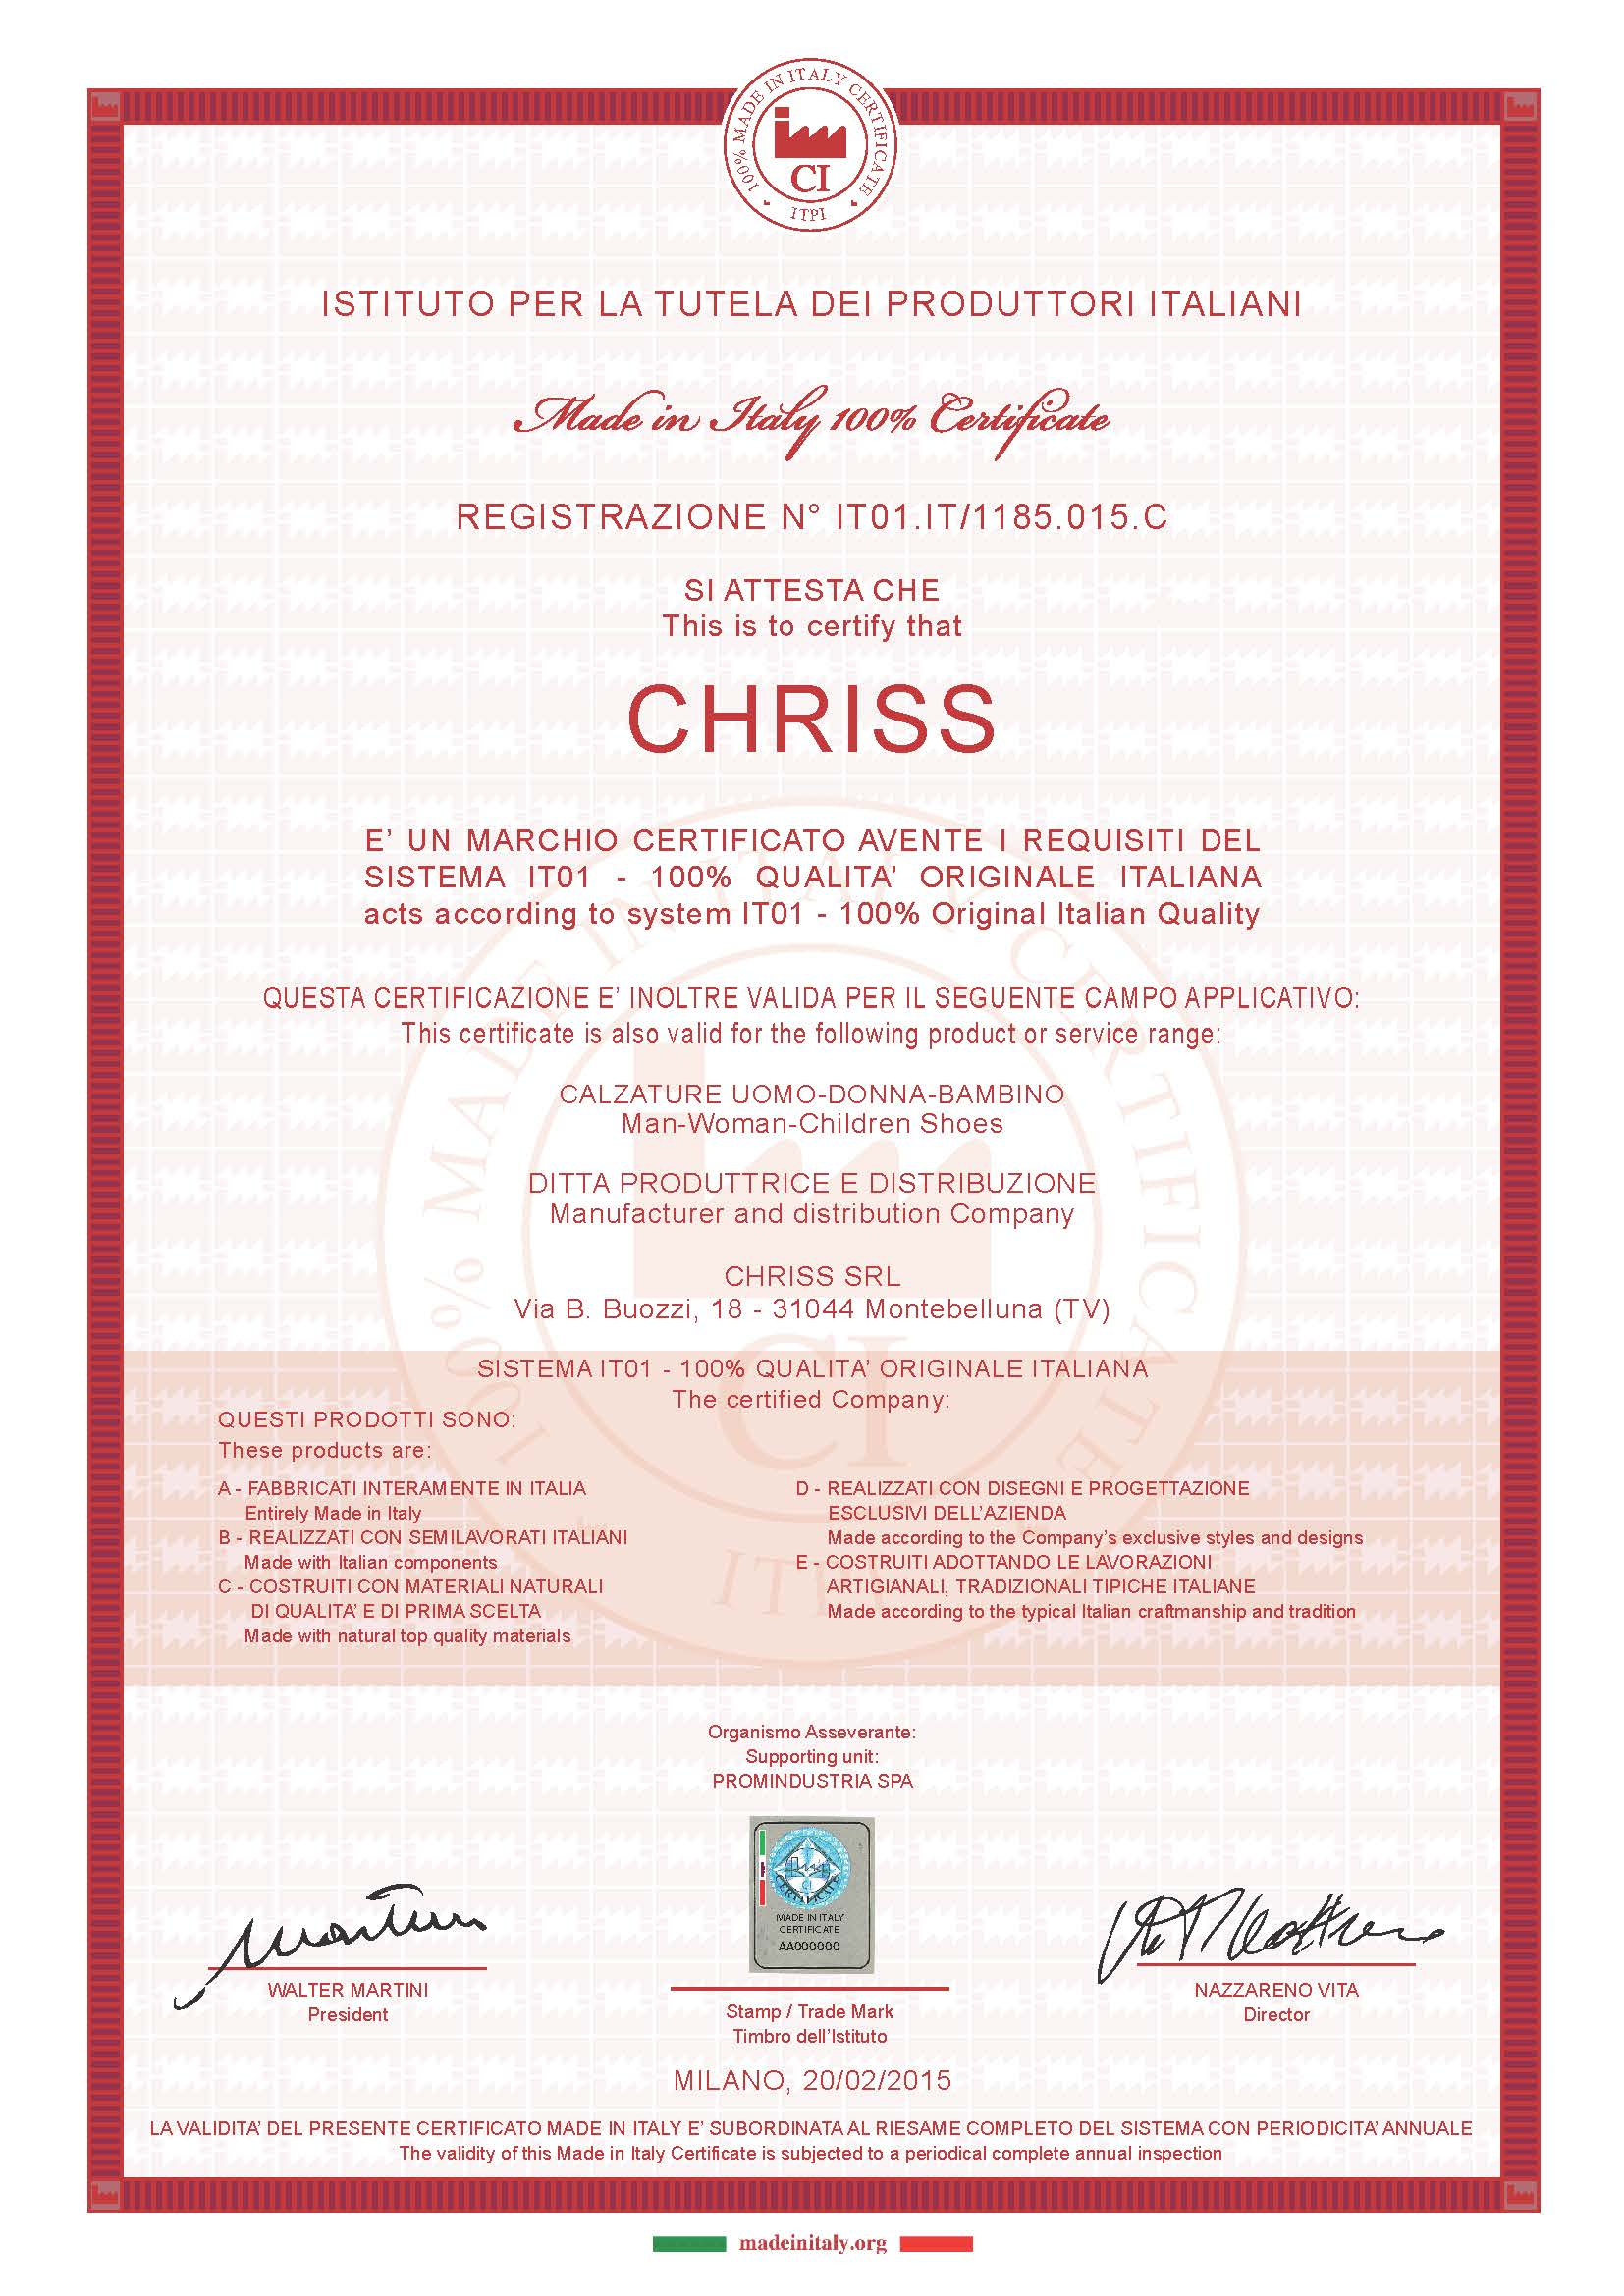 100% Italian Product Certification Chriss S.r.l.